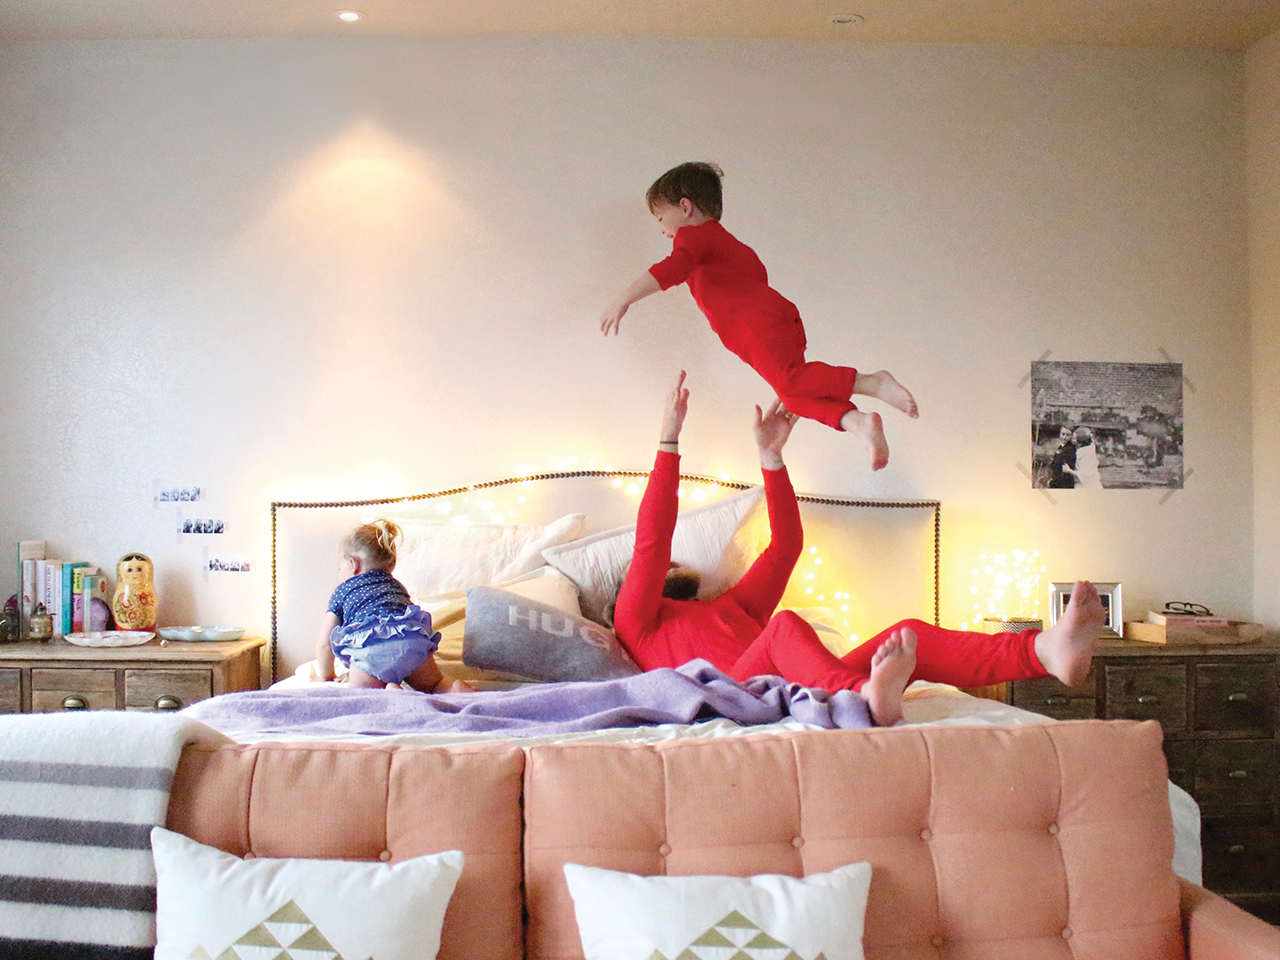 Dad and two kids in playing in bed. Dad is throwing one kid up in the air.